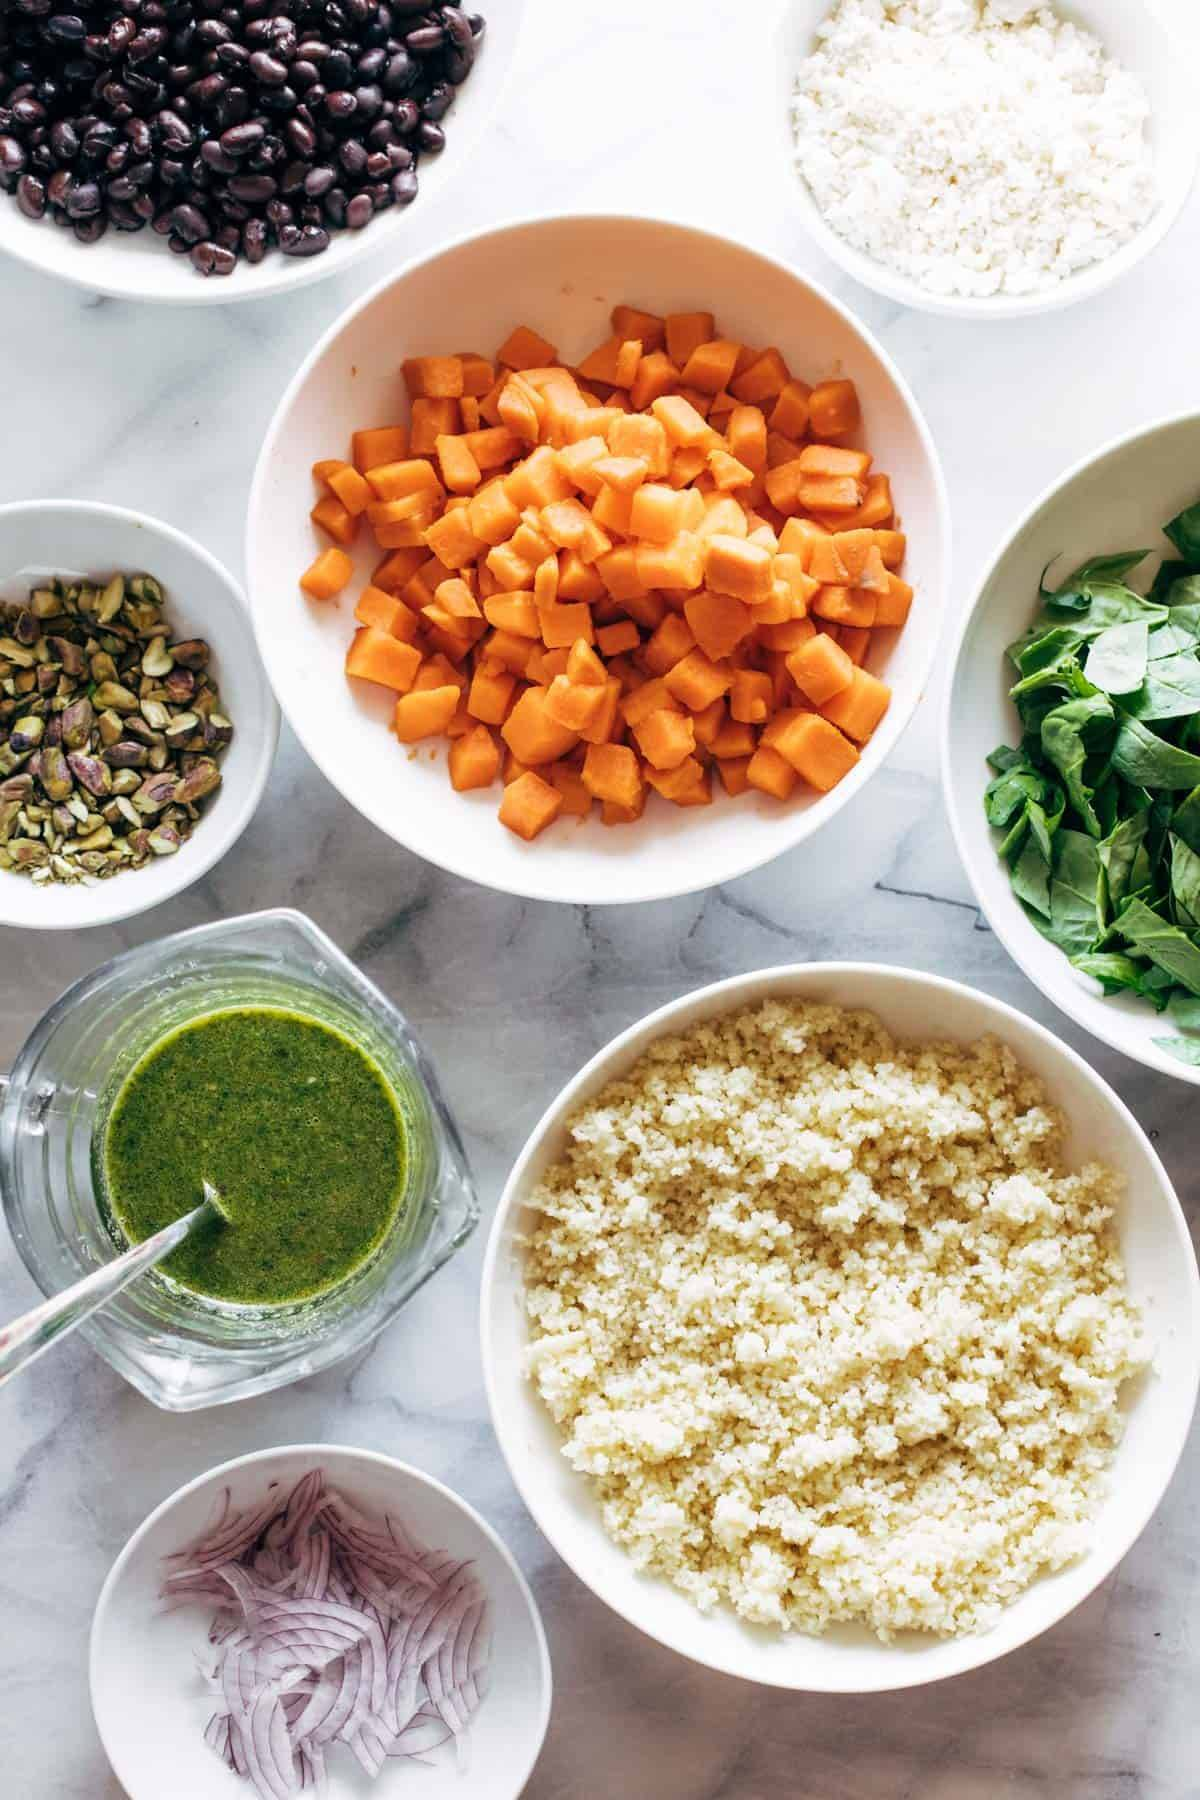 Ingredients in bowls for couscous salad.